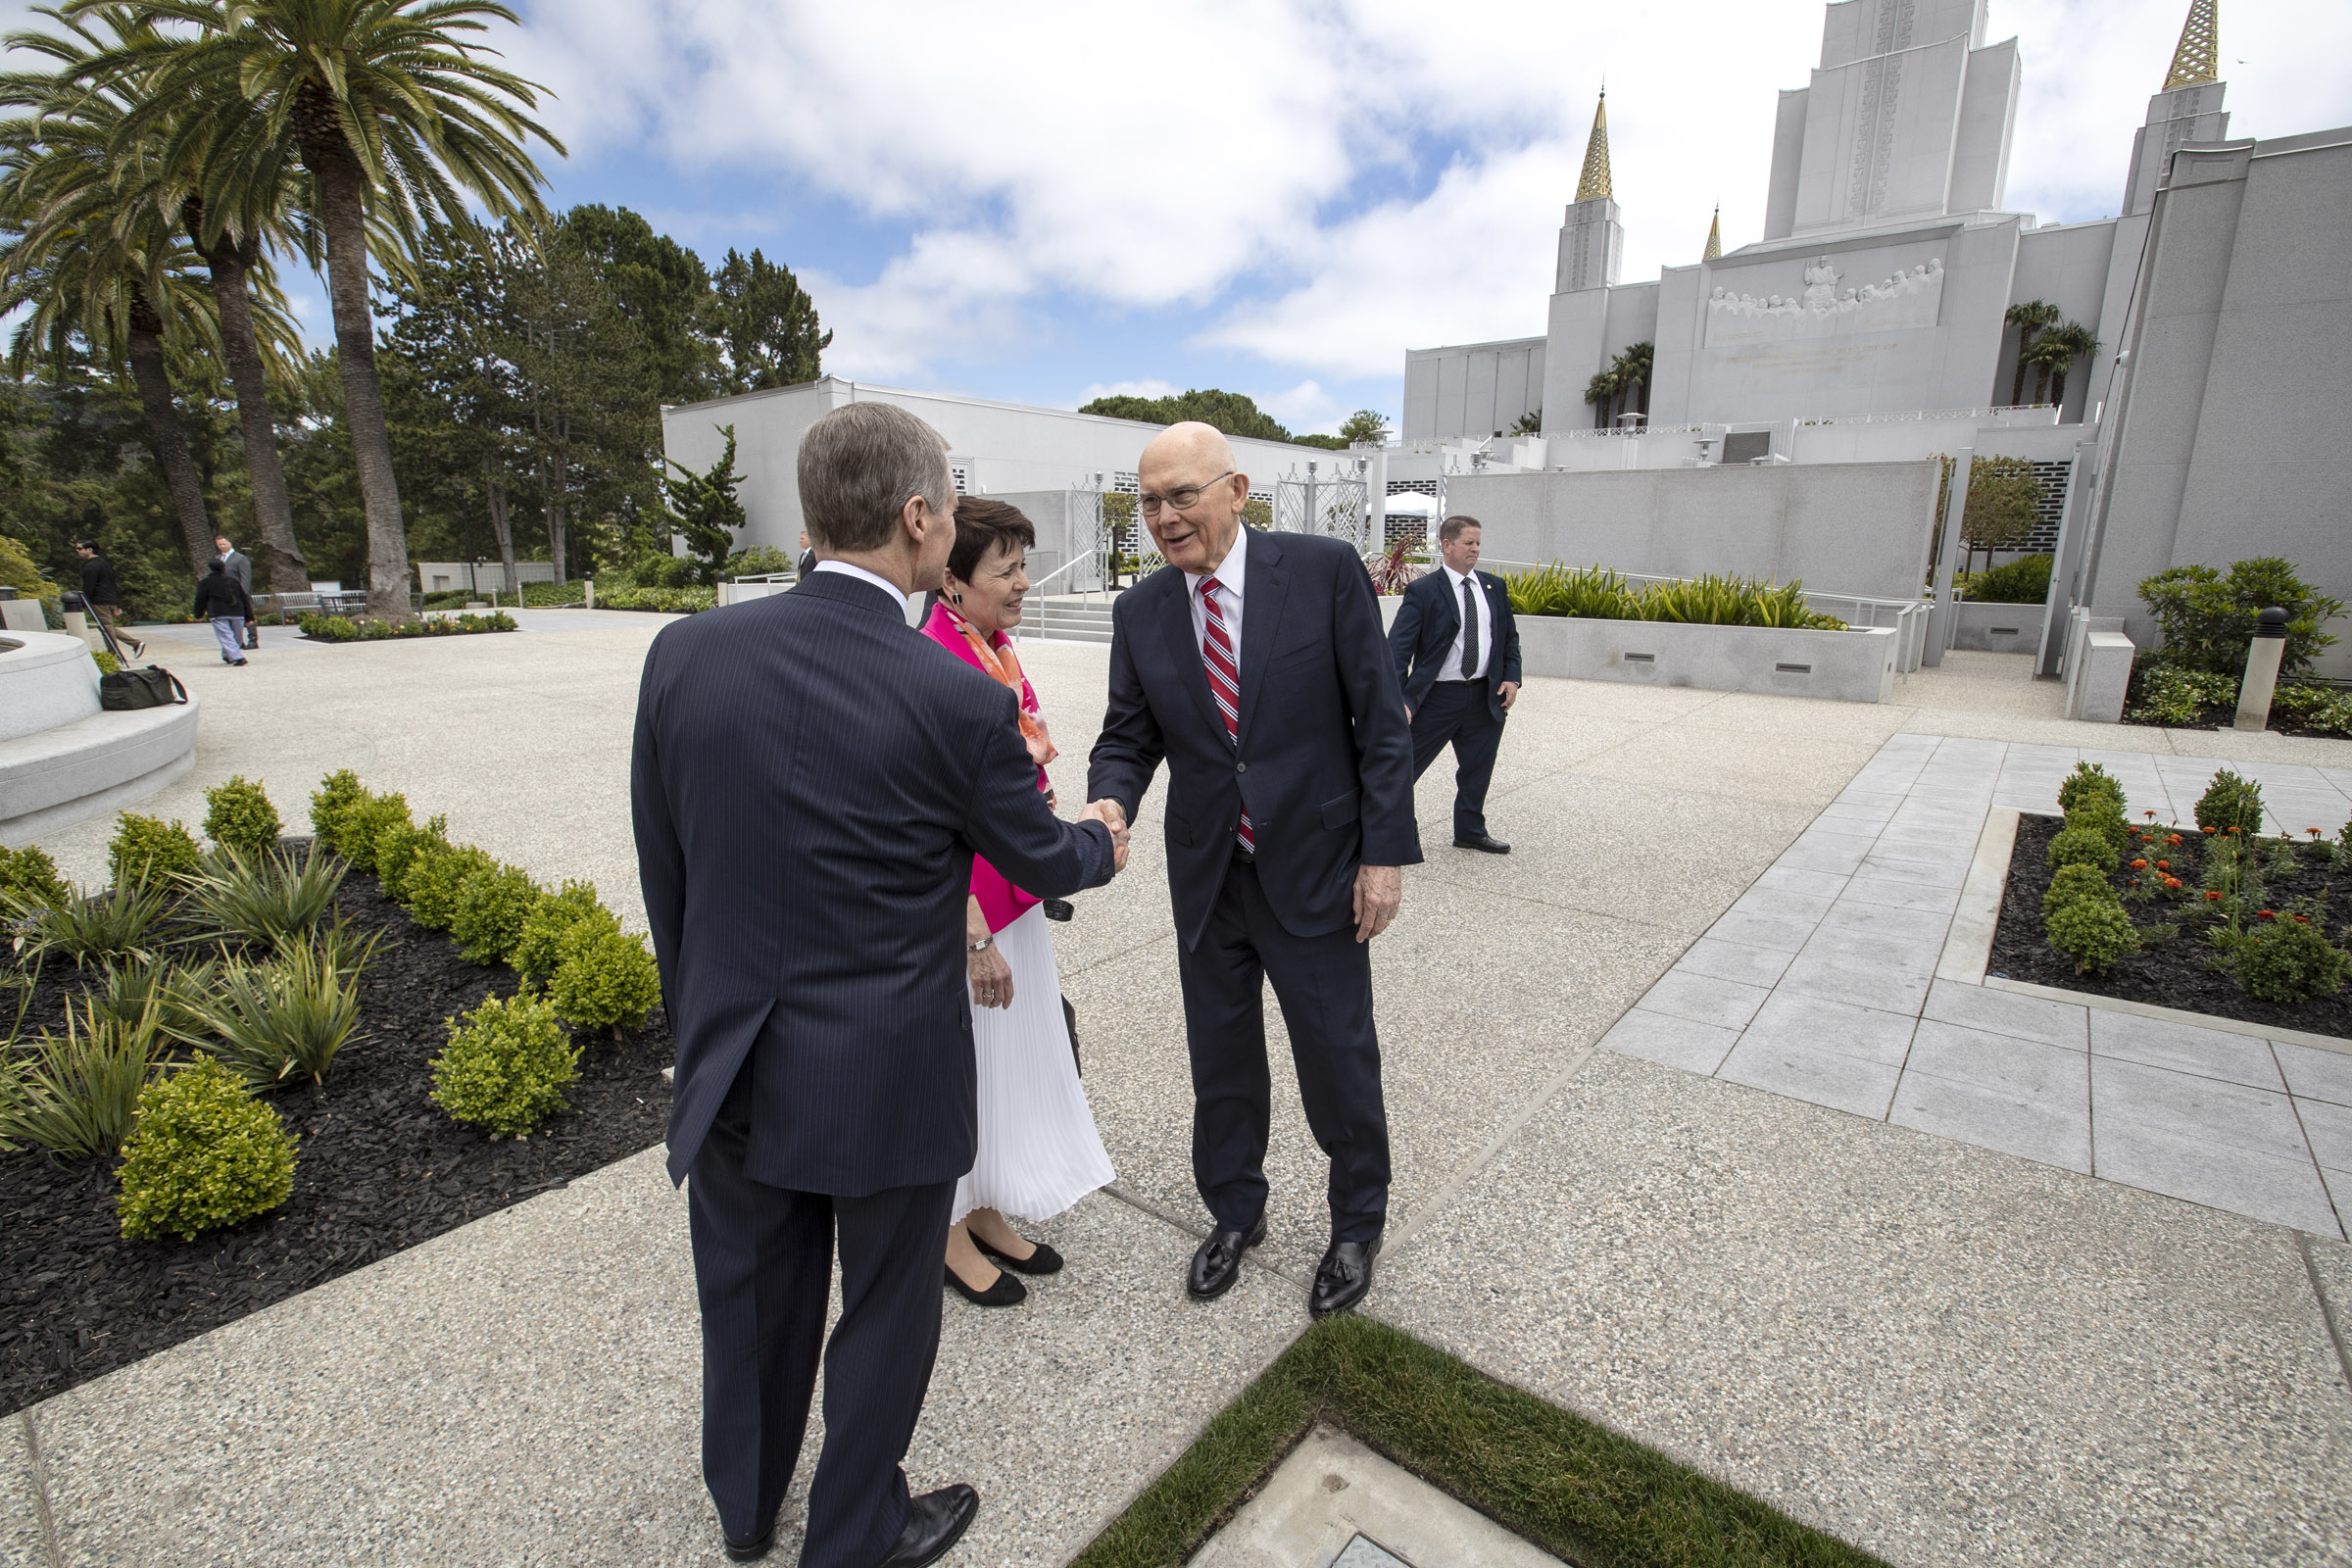 President Dallin H. Oaks, first counselor in the First Presidency, right, greets Elder David A. Bednar of the Quorum of the Twelve Apostles and his wife, Sister Susan Bednar as they prepare to walk-through the Oakland California Temple on Saturday, June 15, 2019.